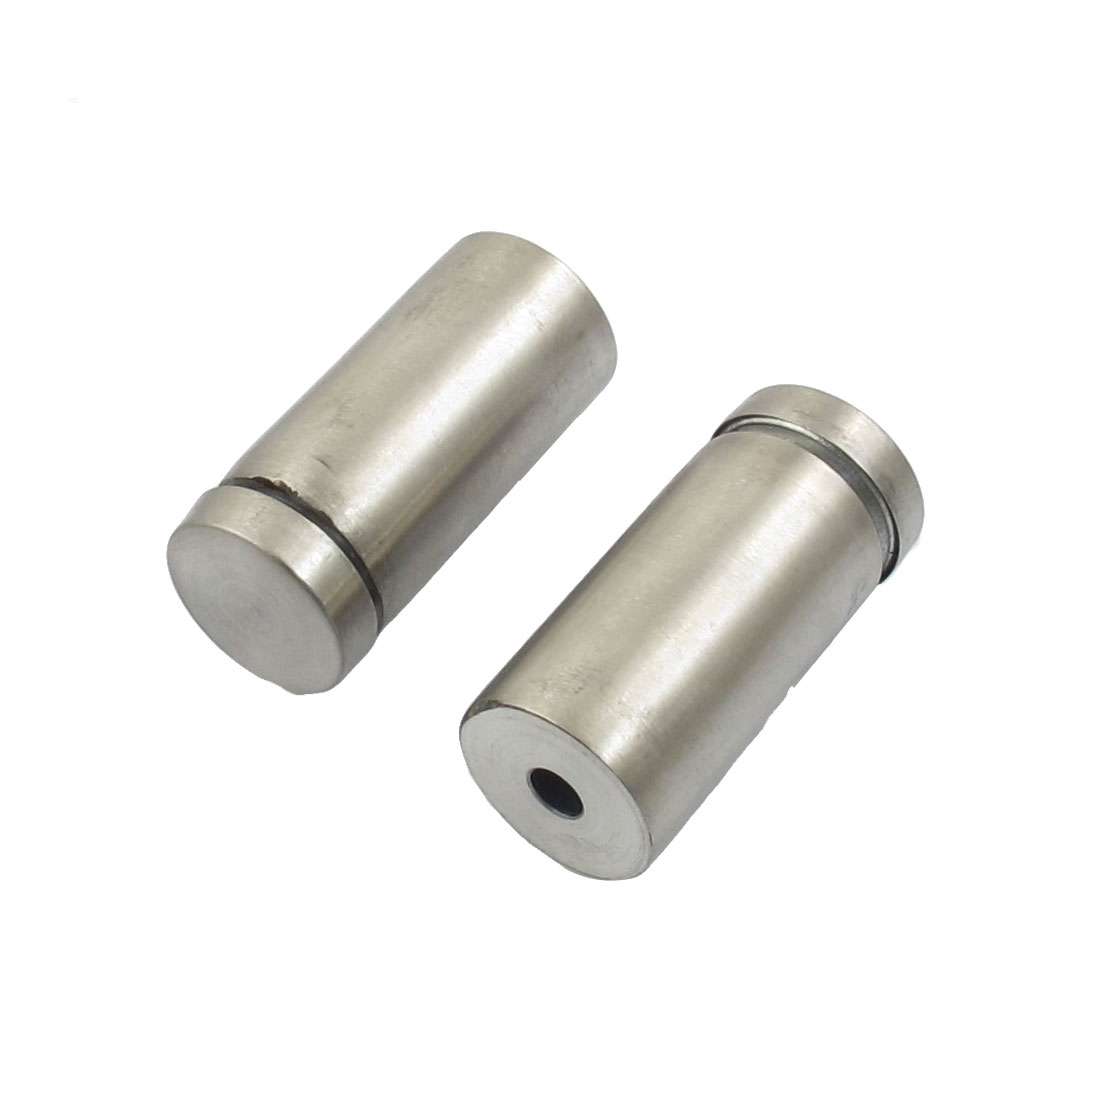 2 Pcs 4.8mm Hole Diameter Cylinder Shaped Stainless Steel Screw Nut